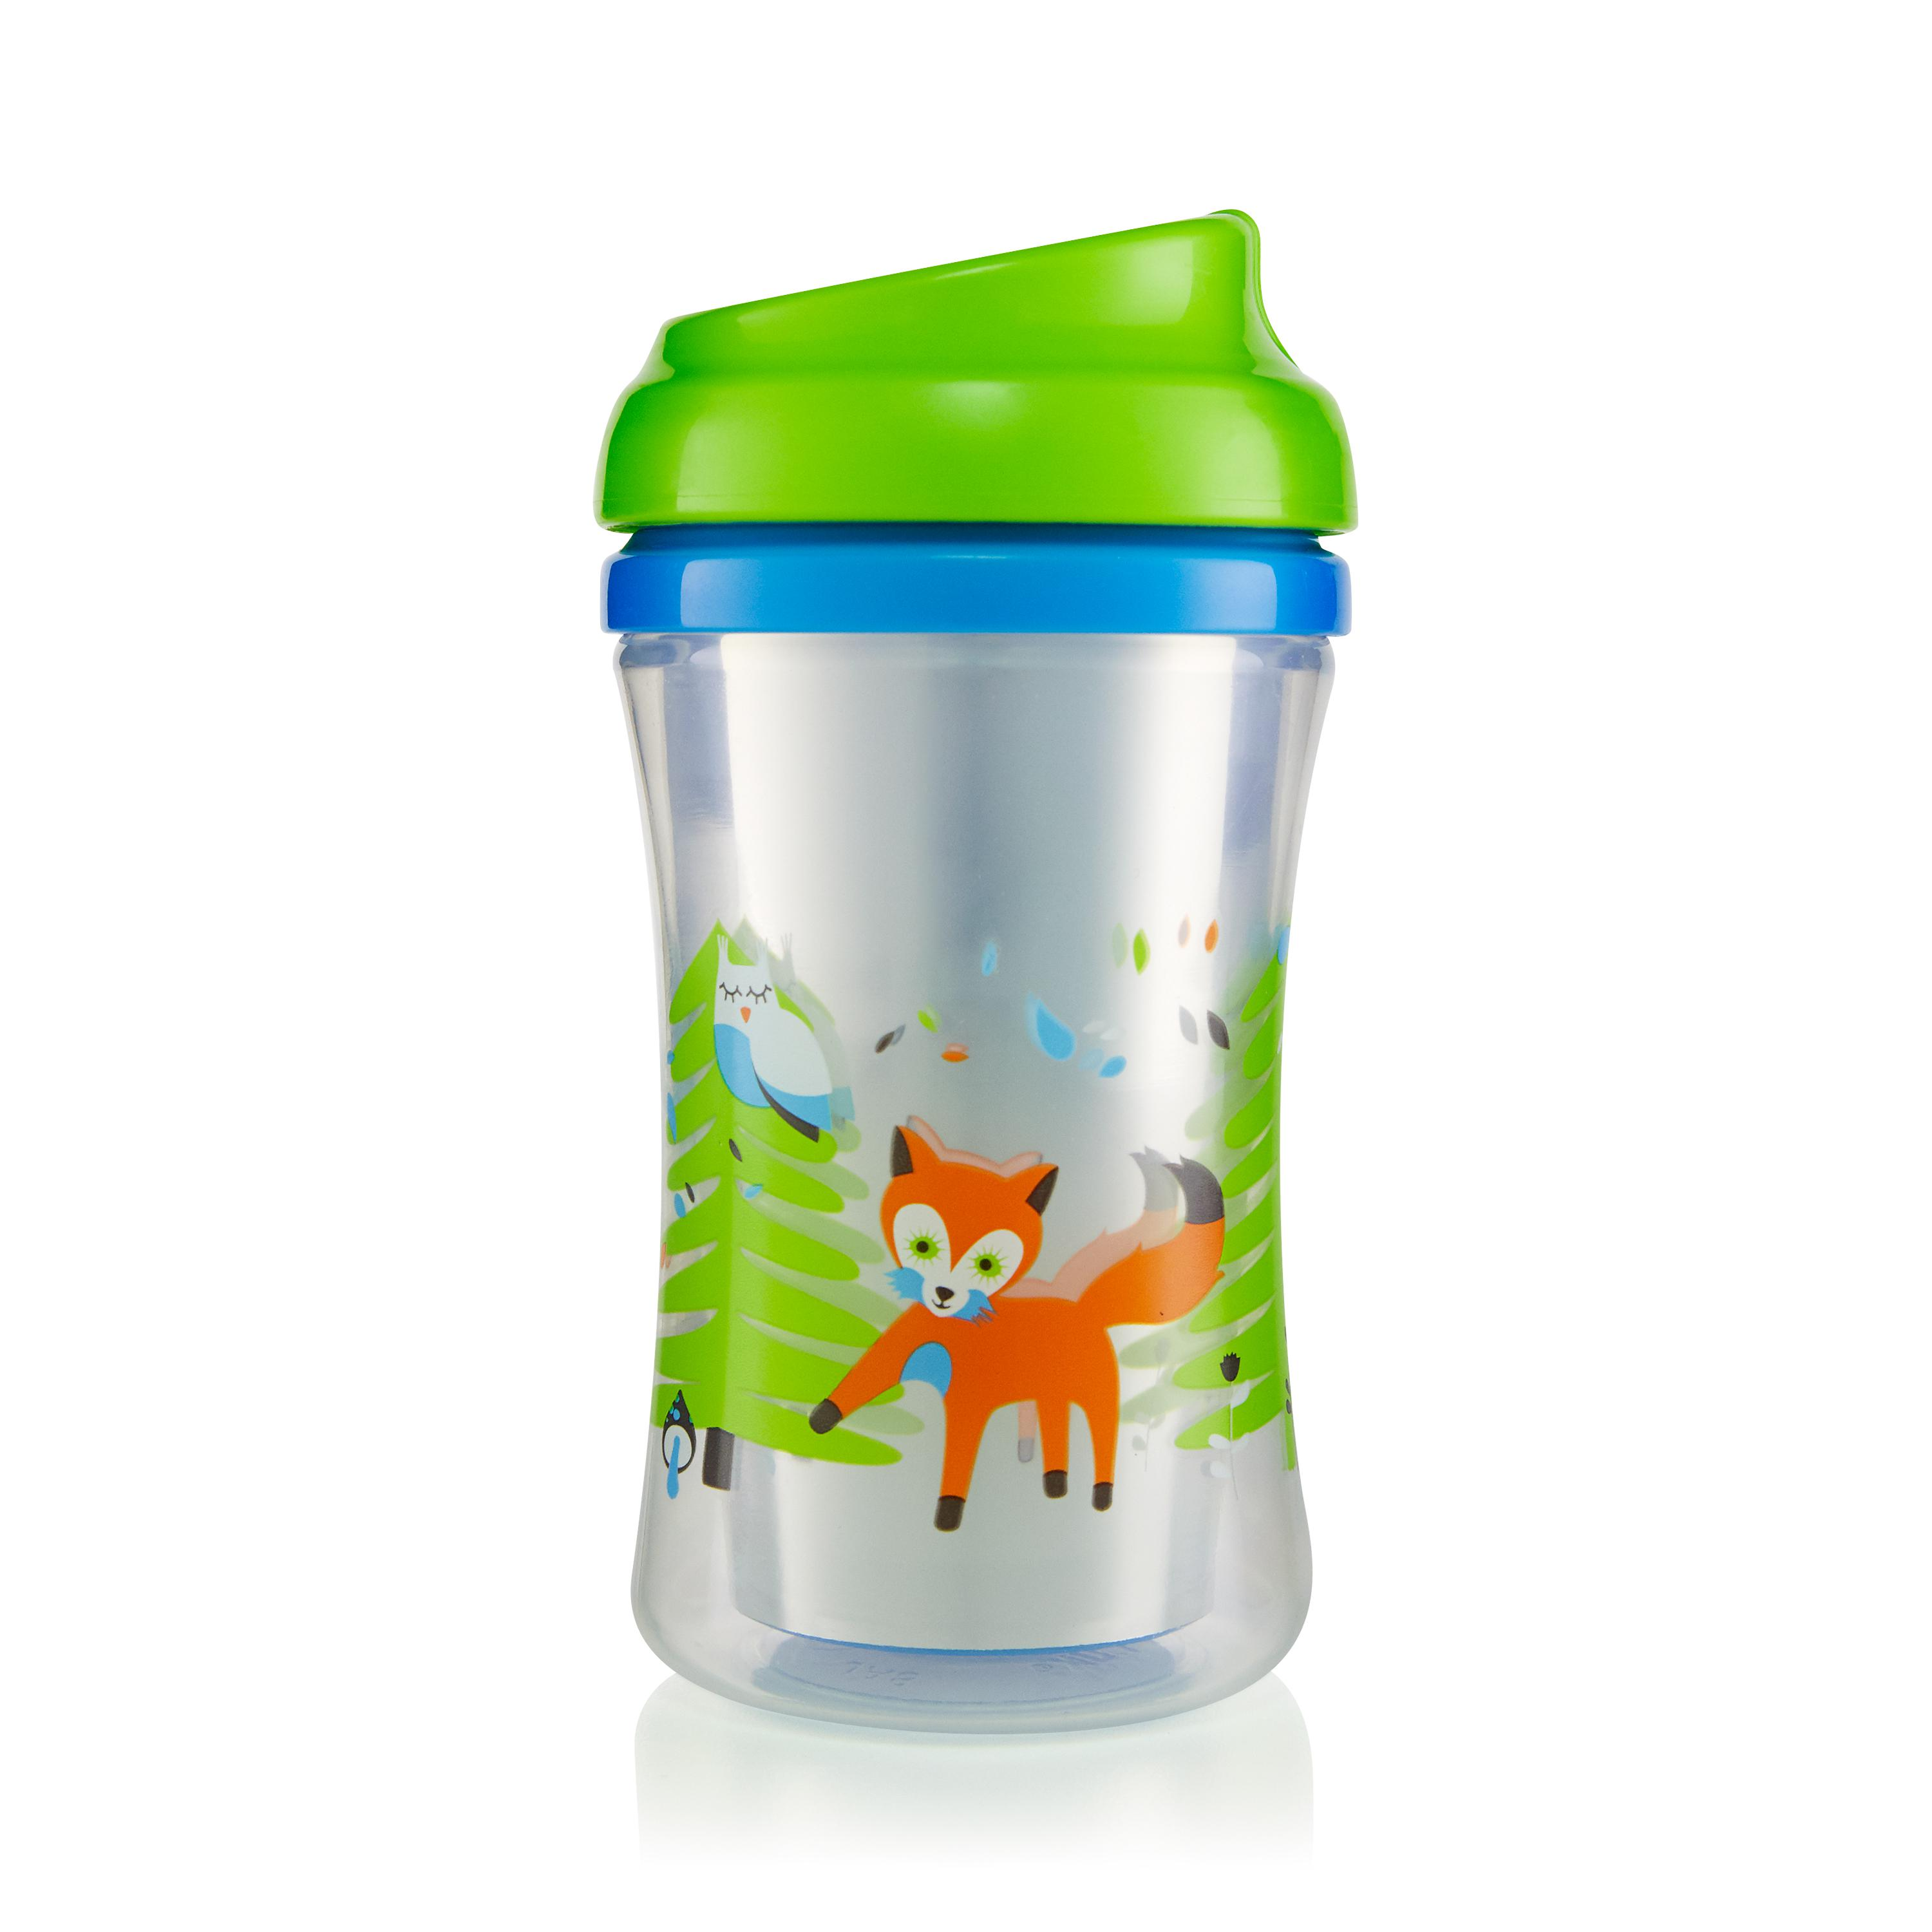 First Essentials by NUK™ Insulated Cup-like Rim Sippy Cup, 9 oz., 2-Pack Product Image 2 of 6